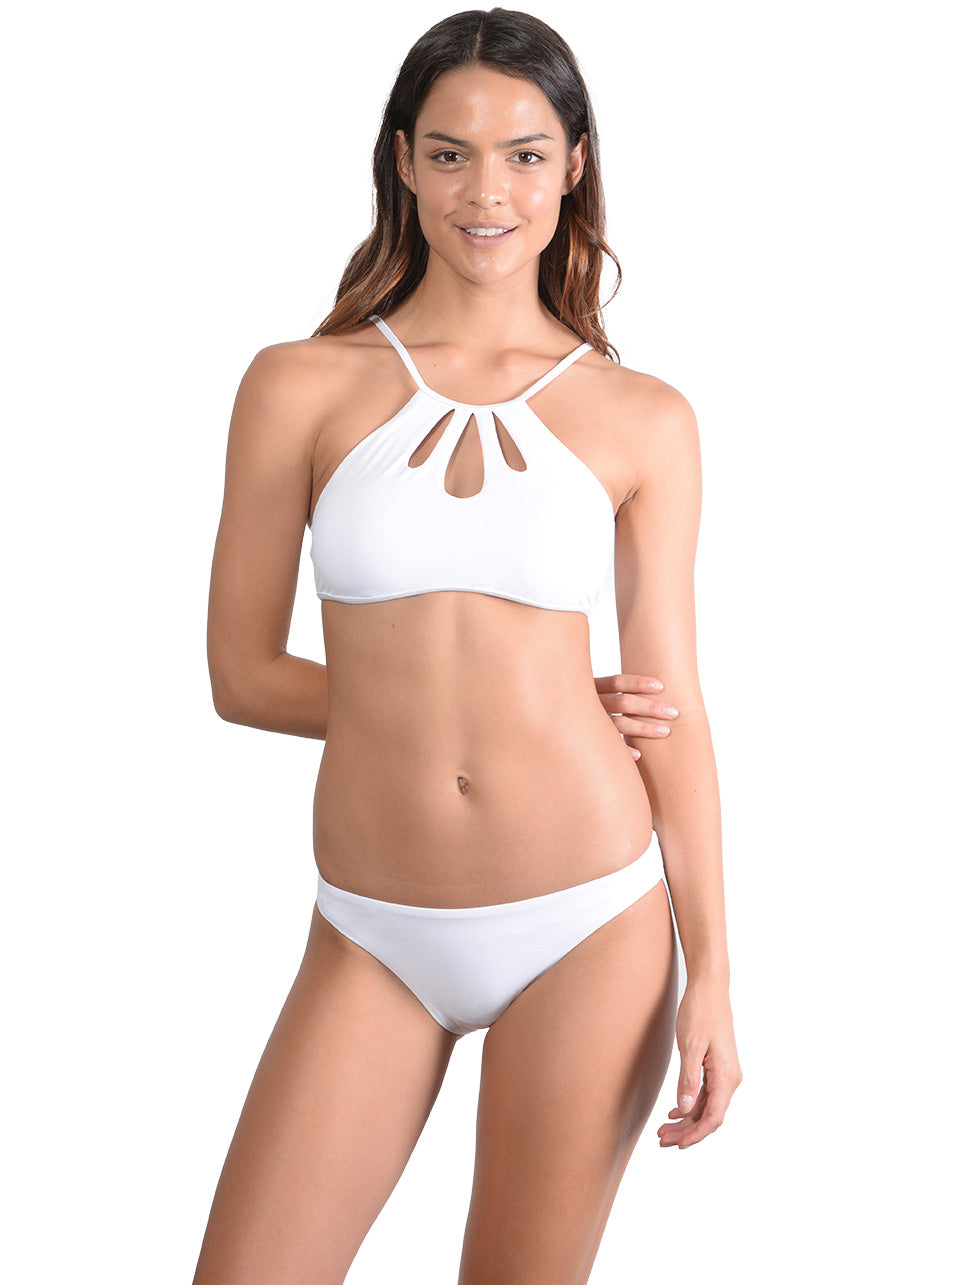 White Seduce Tear Drop Bikini Top by Finch Swim